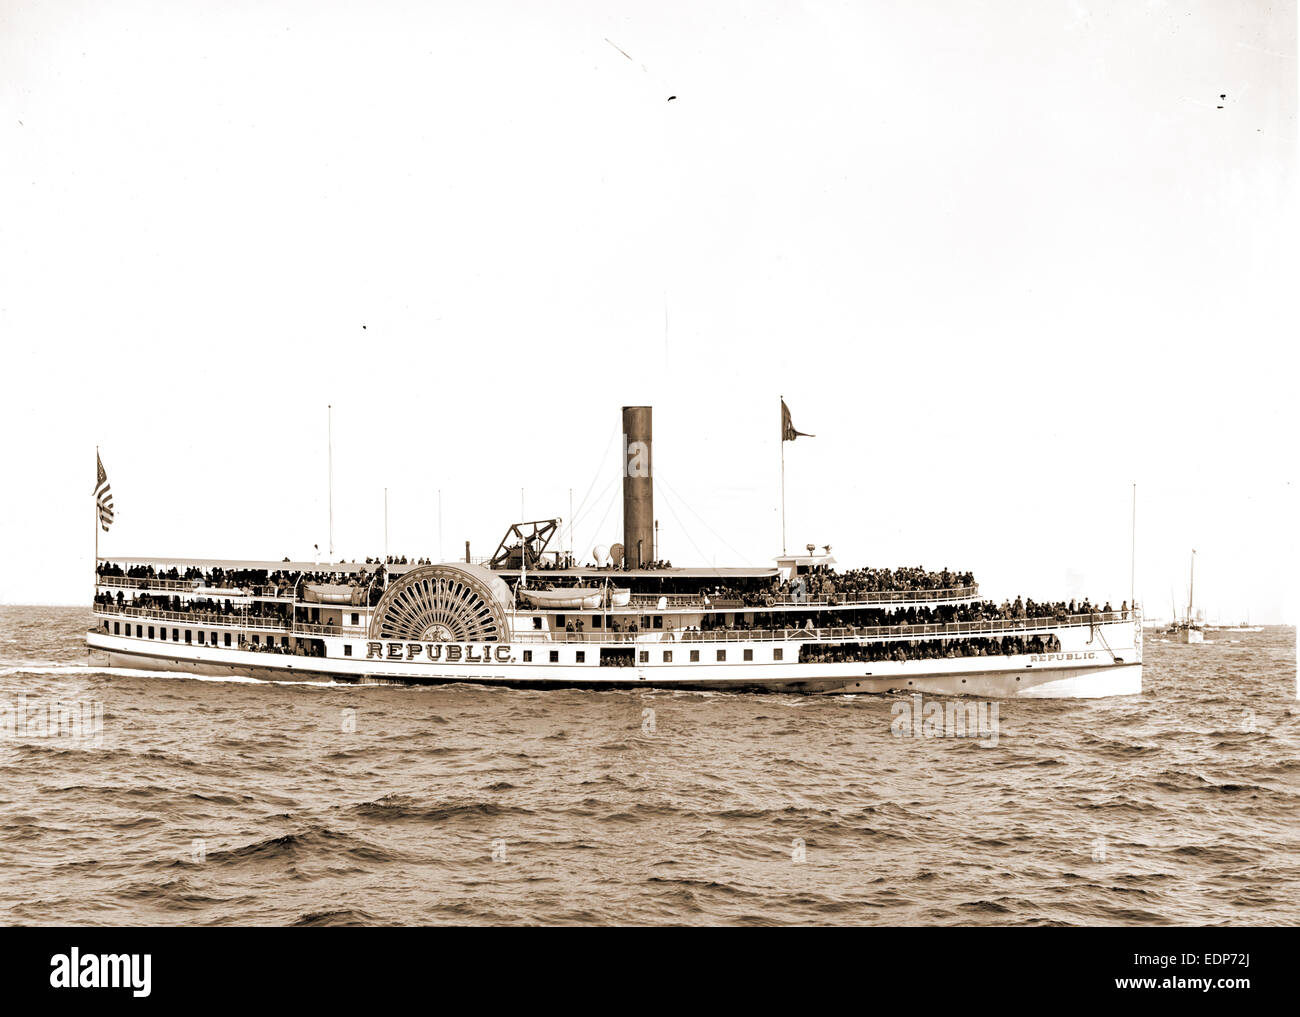 nyyc-steamer-republic-new-york-yacht-clu